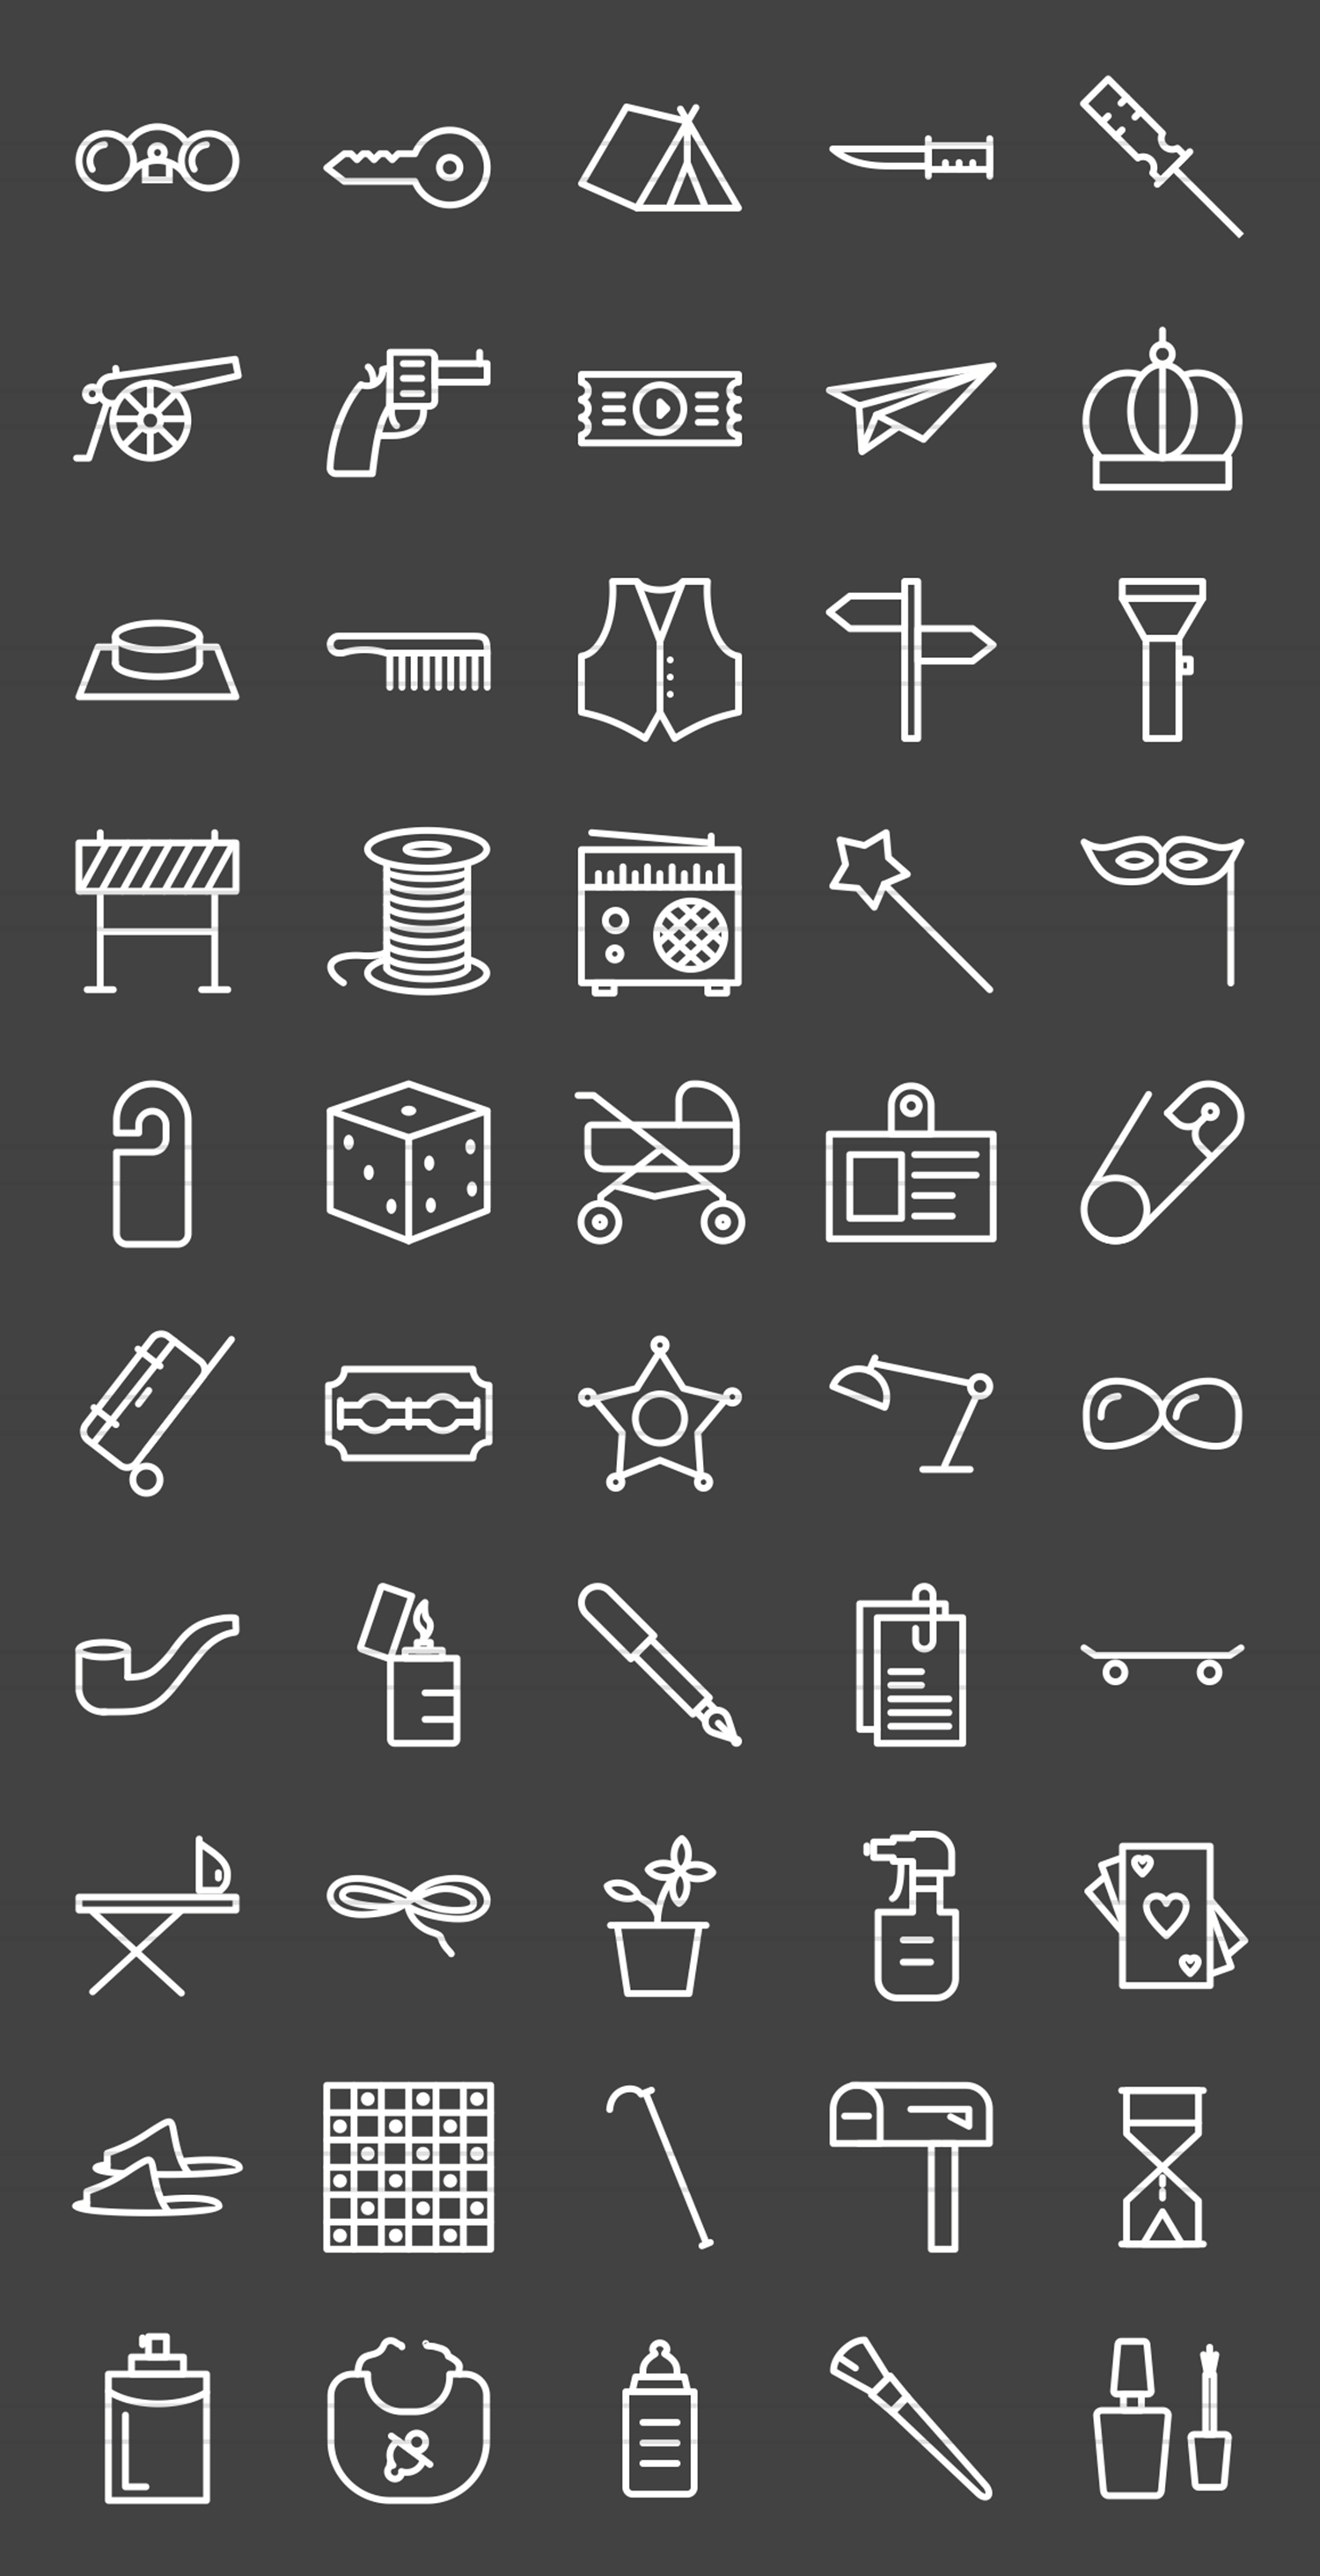 50 Objects Line Inverted Icons example image 2